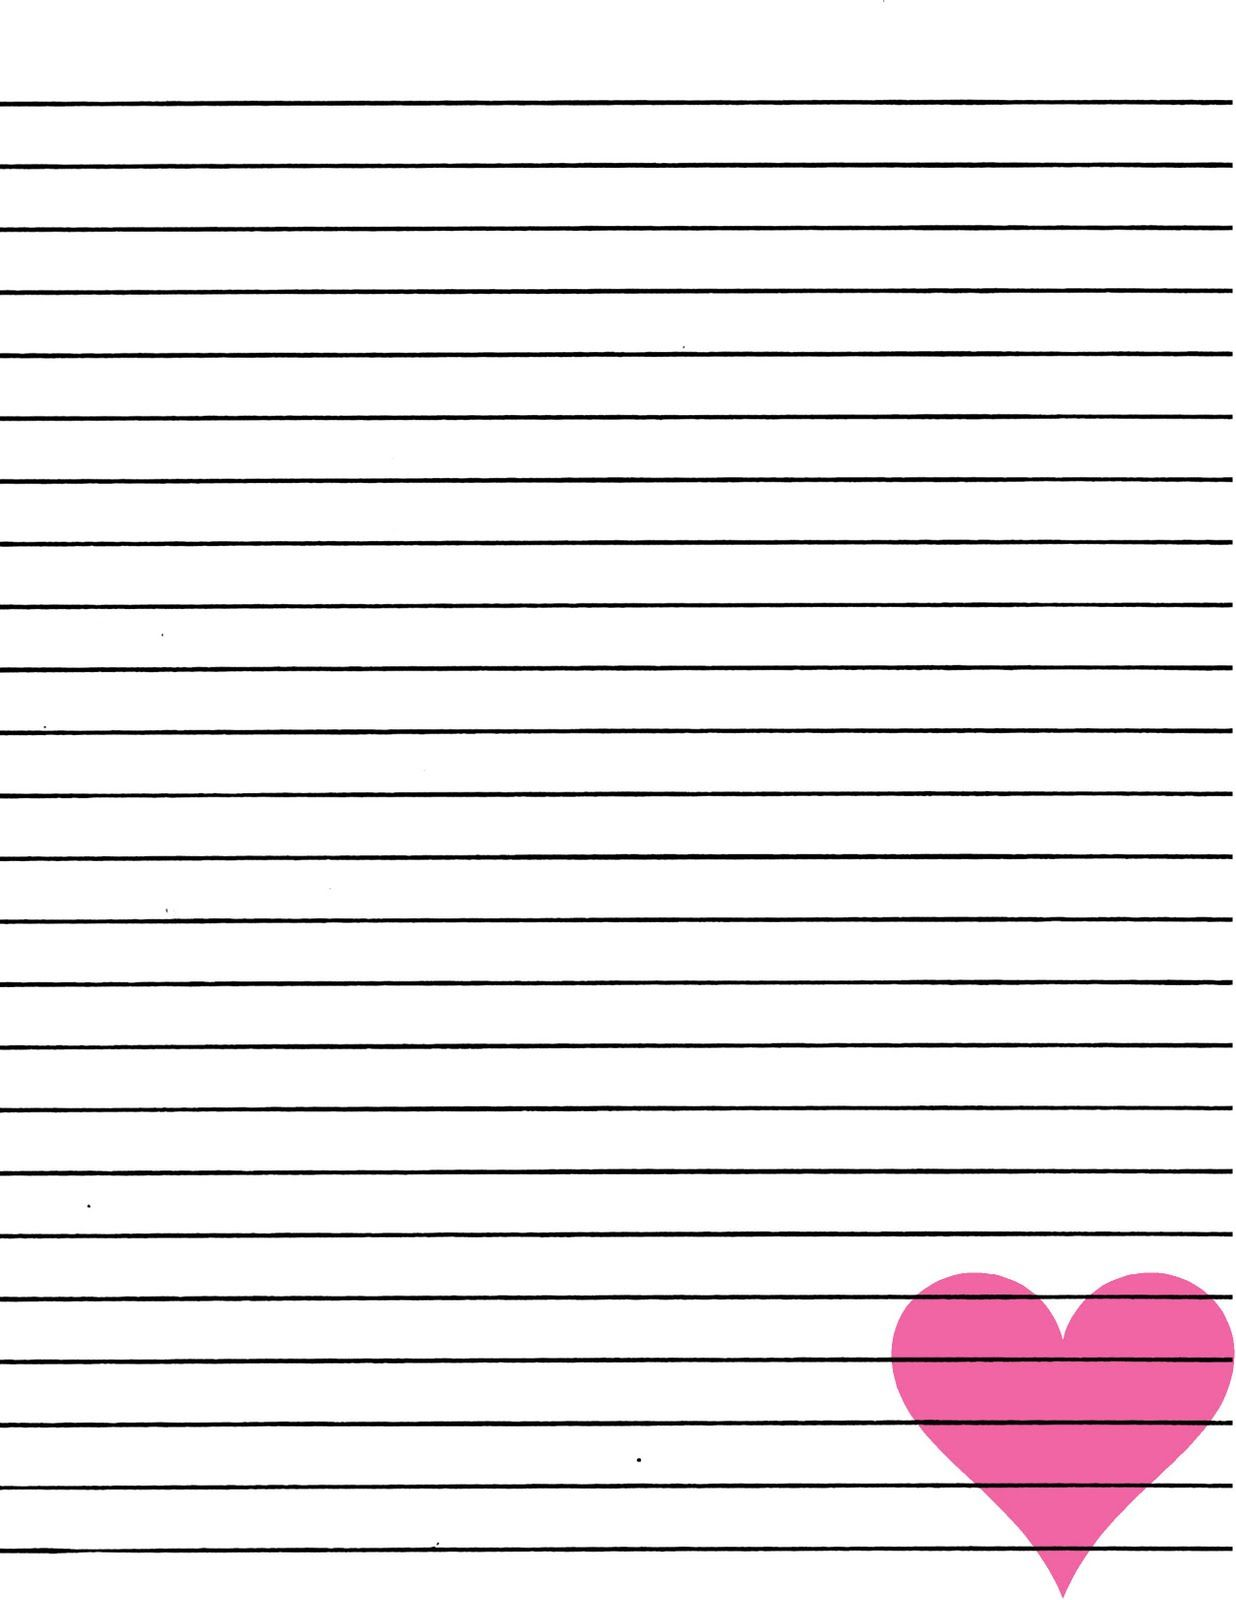 Doc650850 Lined Stationary Paper Free Printable Stationery – Free Printable Lined Stationary